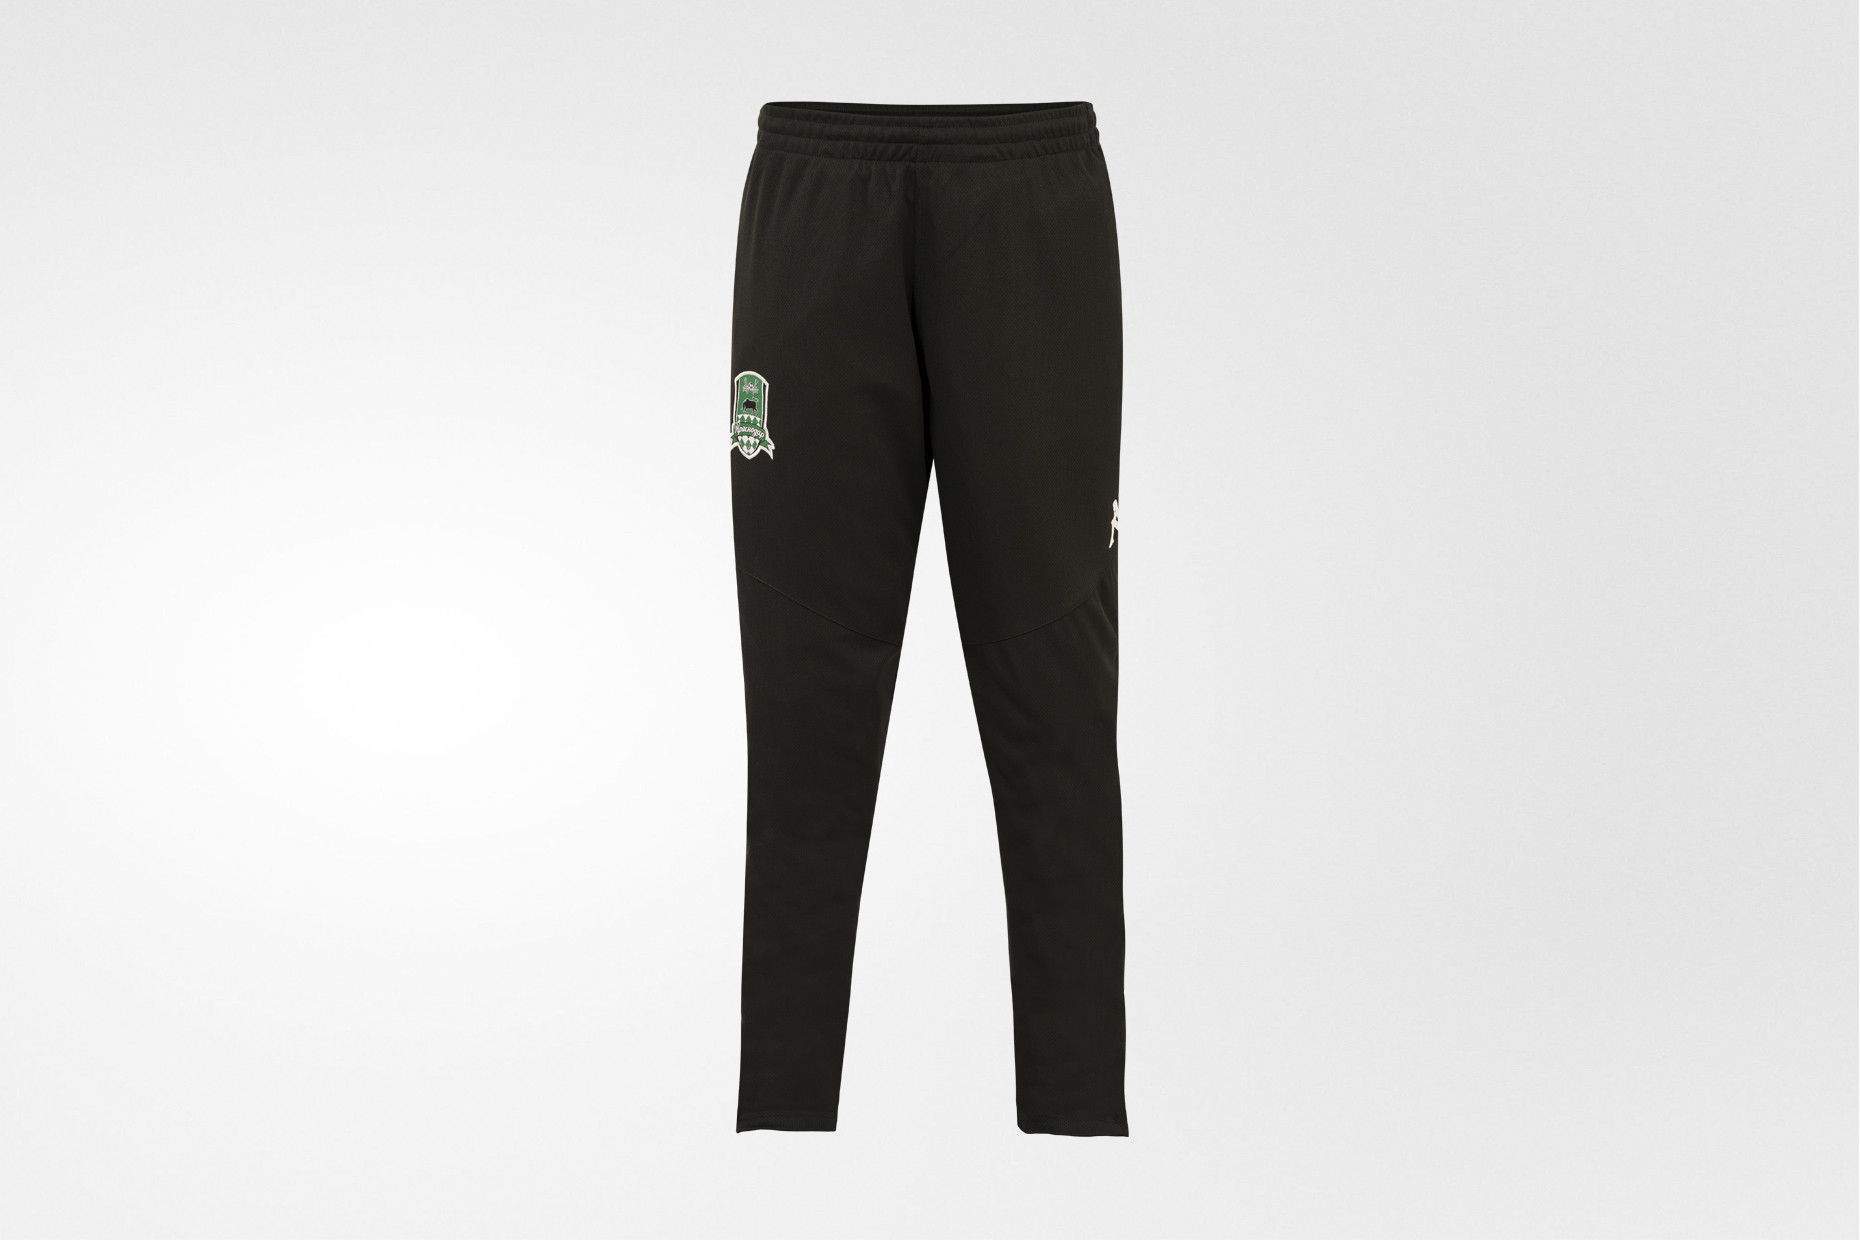 d1c42cc683e2 Брюки детские Kappa FC Krasnodar Training Pants